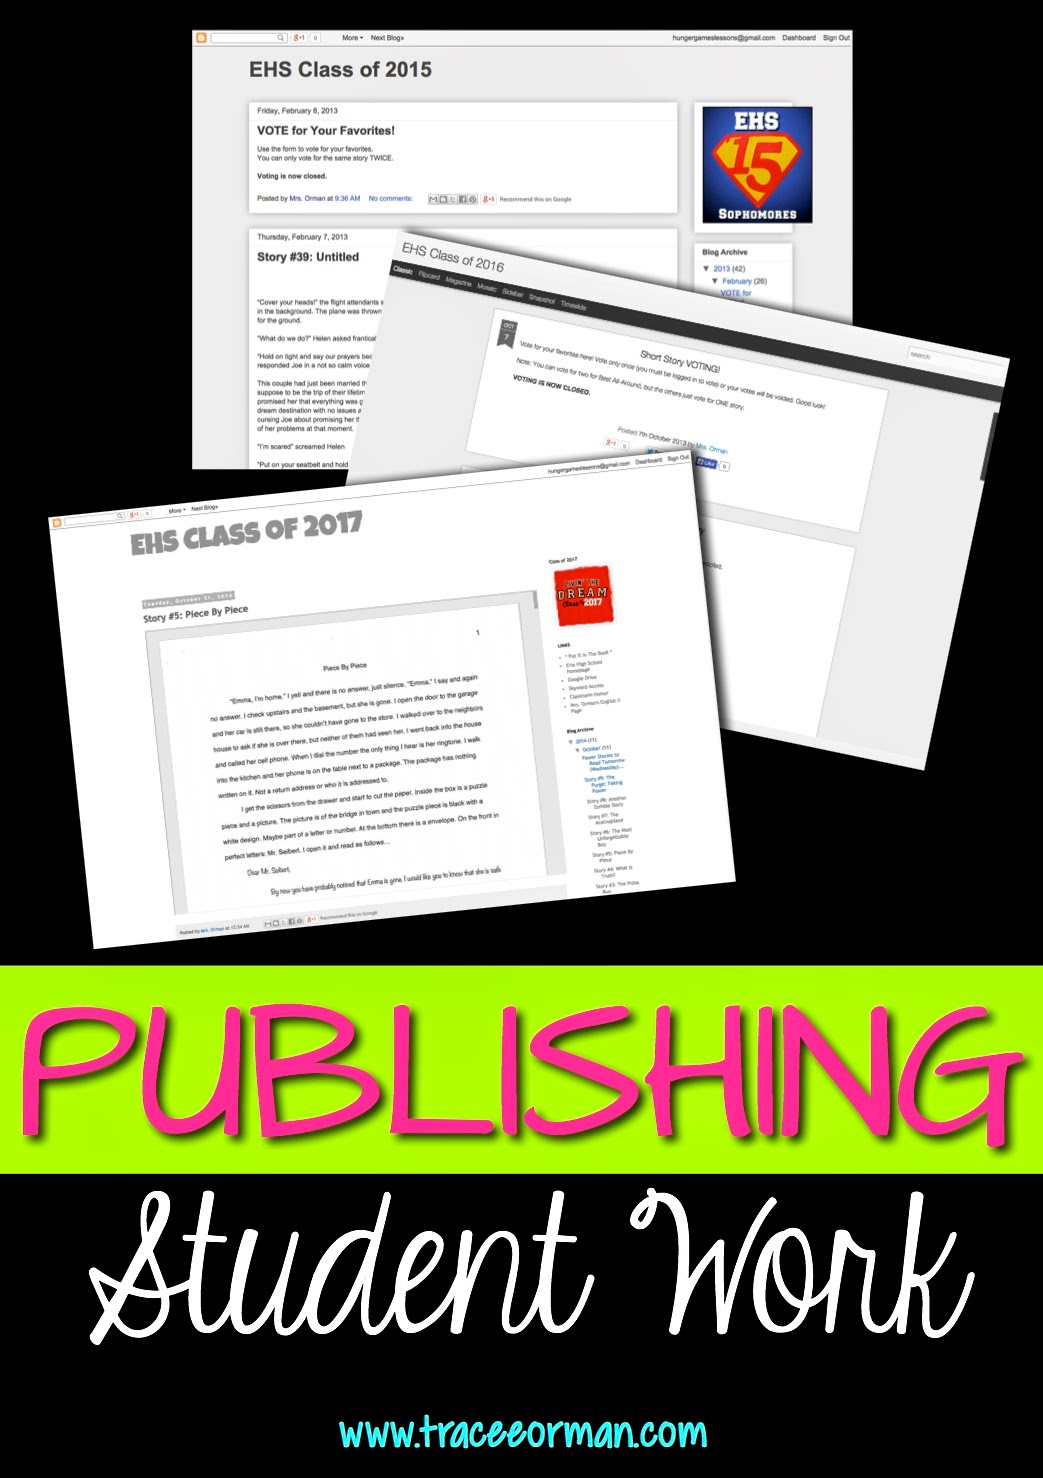 Publishing Student Work {from www.traceeorman.com}